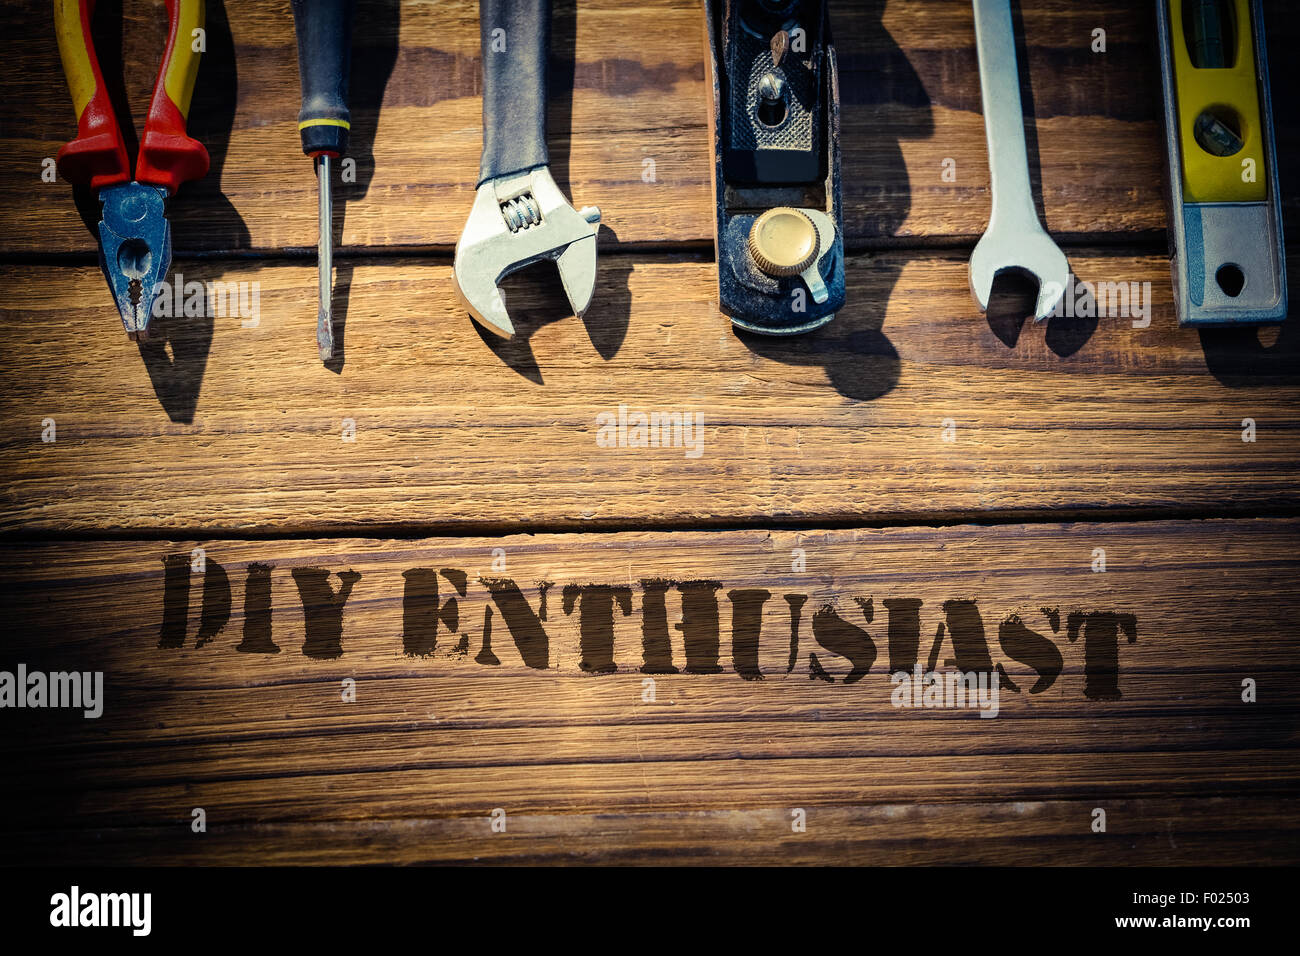 Diy enthusiast against desk with tools - Stock Image